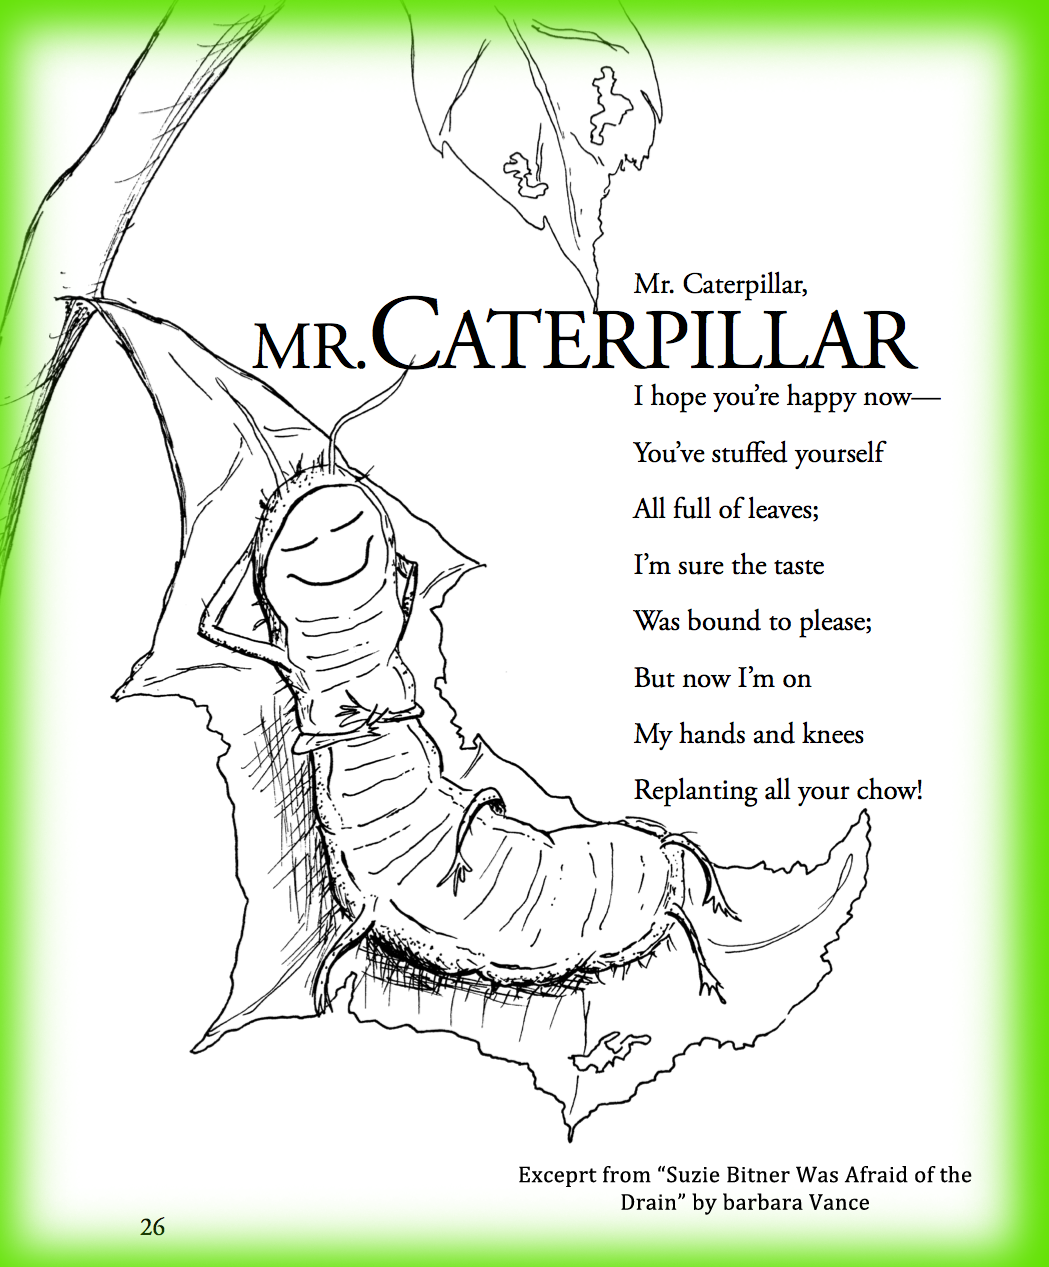 Children's Poem About Spring And Bugs And A Caterpillar